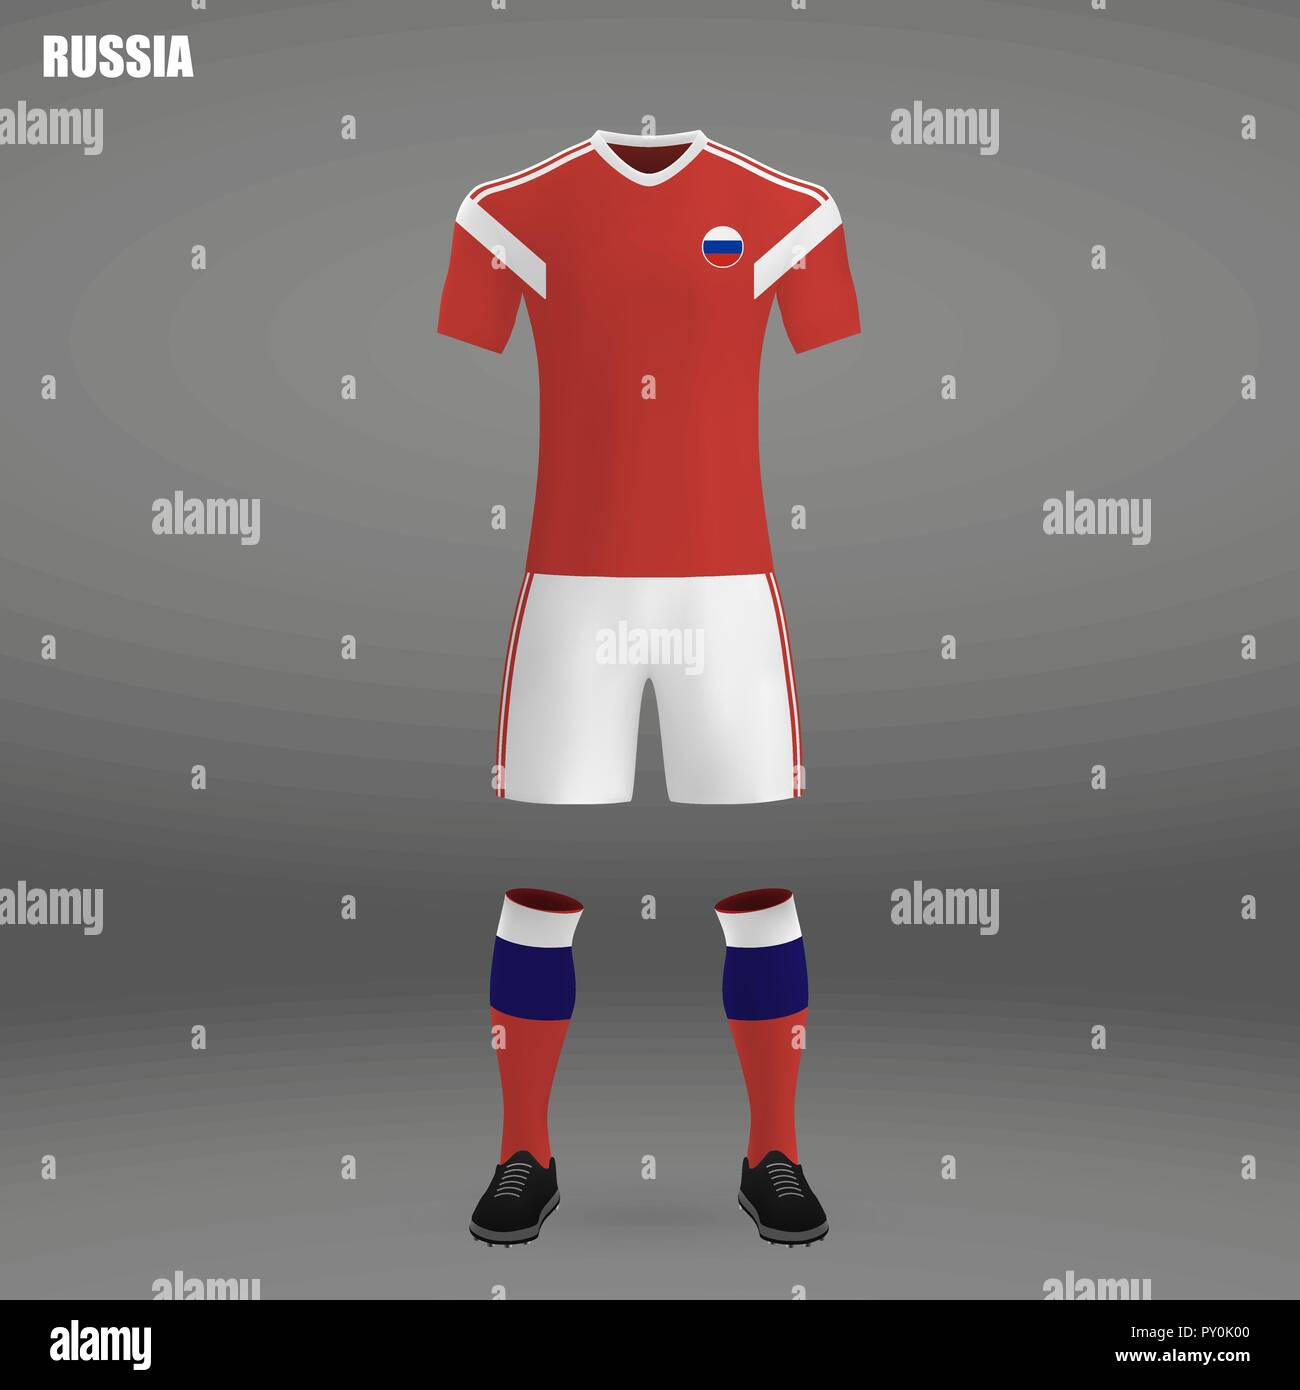 c079303a2fc football kit of Russia 2018, t-shirt template for soccer jersey. Vector  illustration